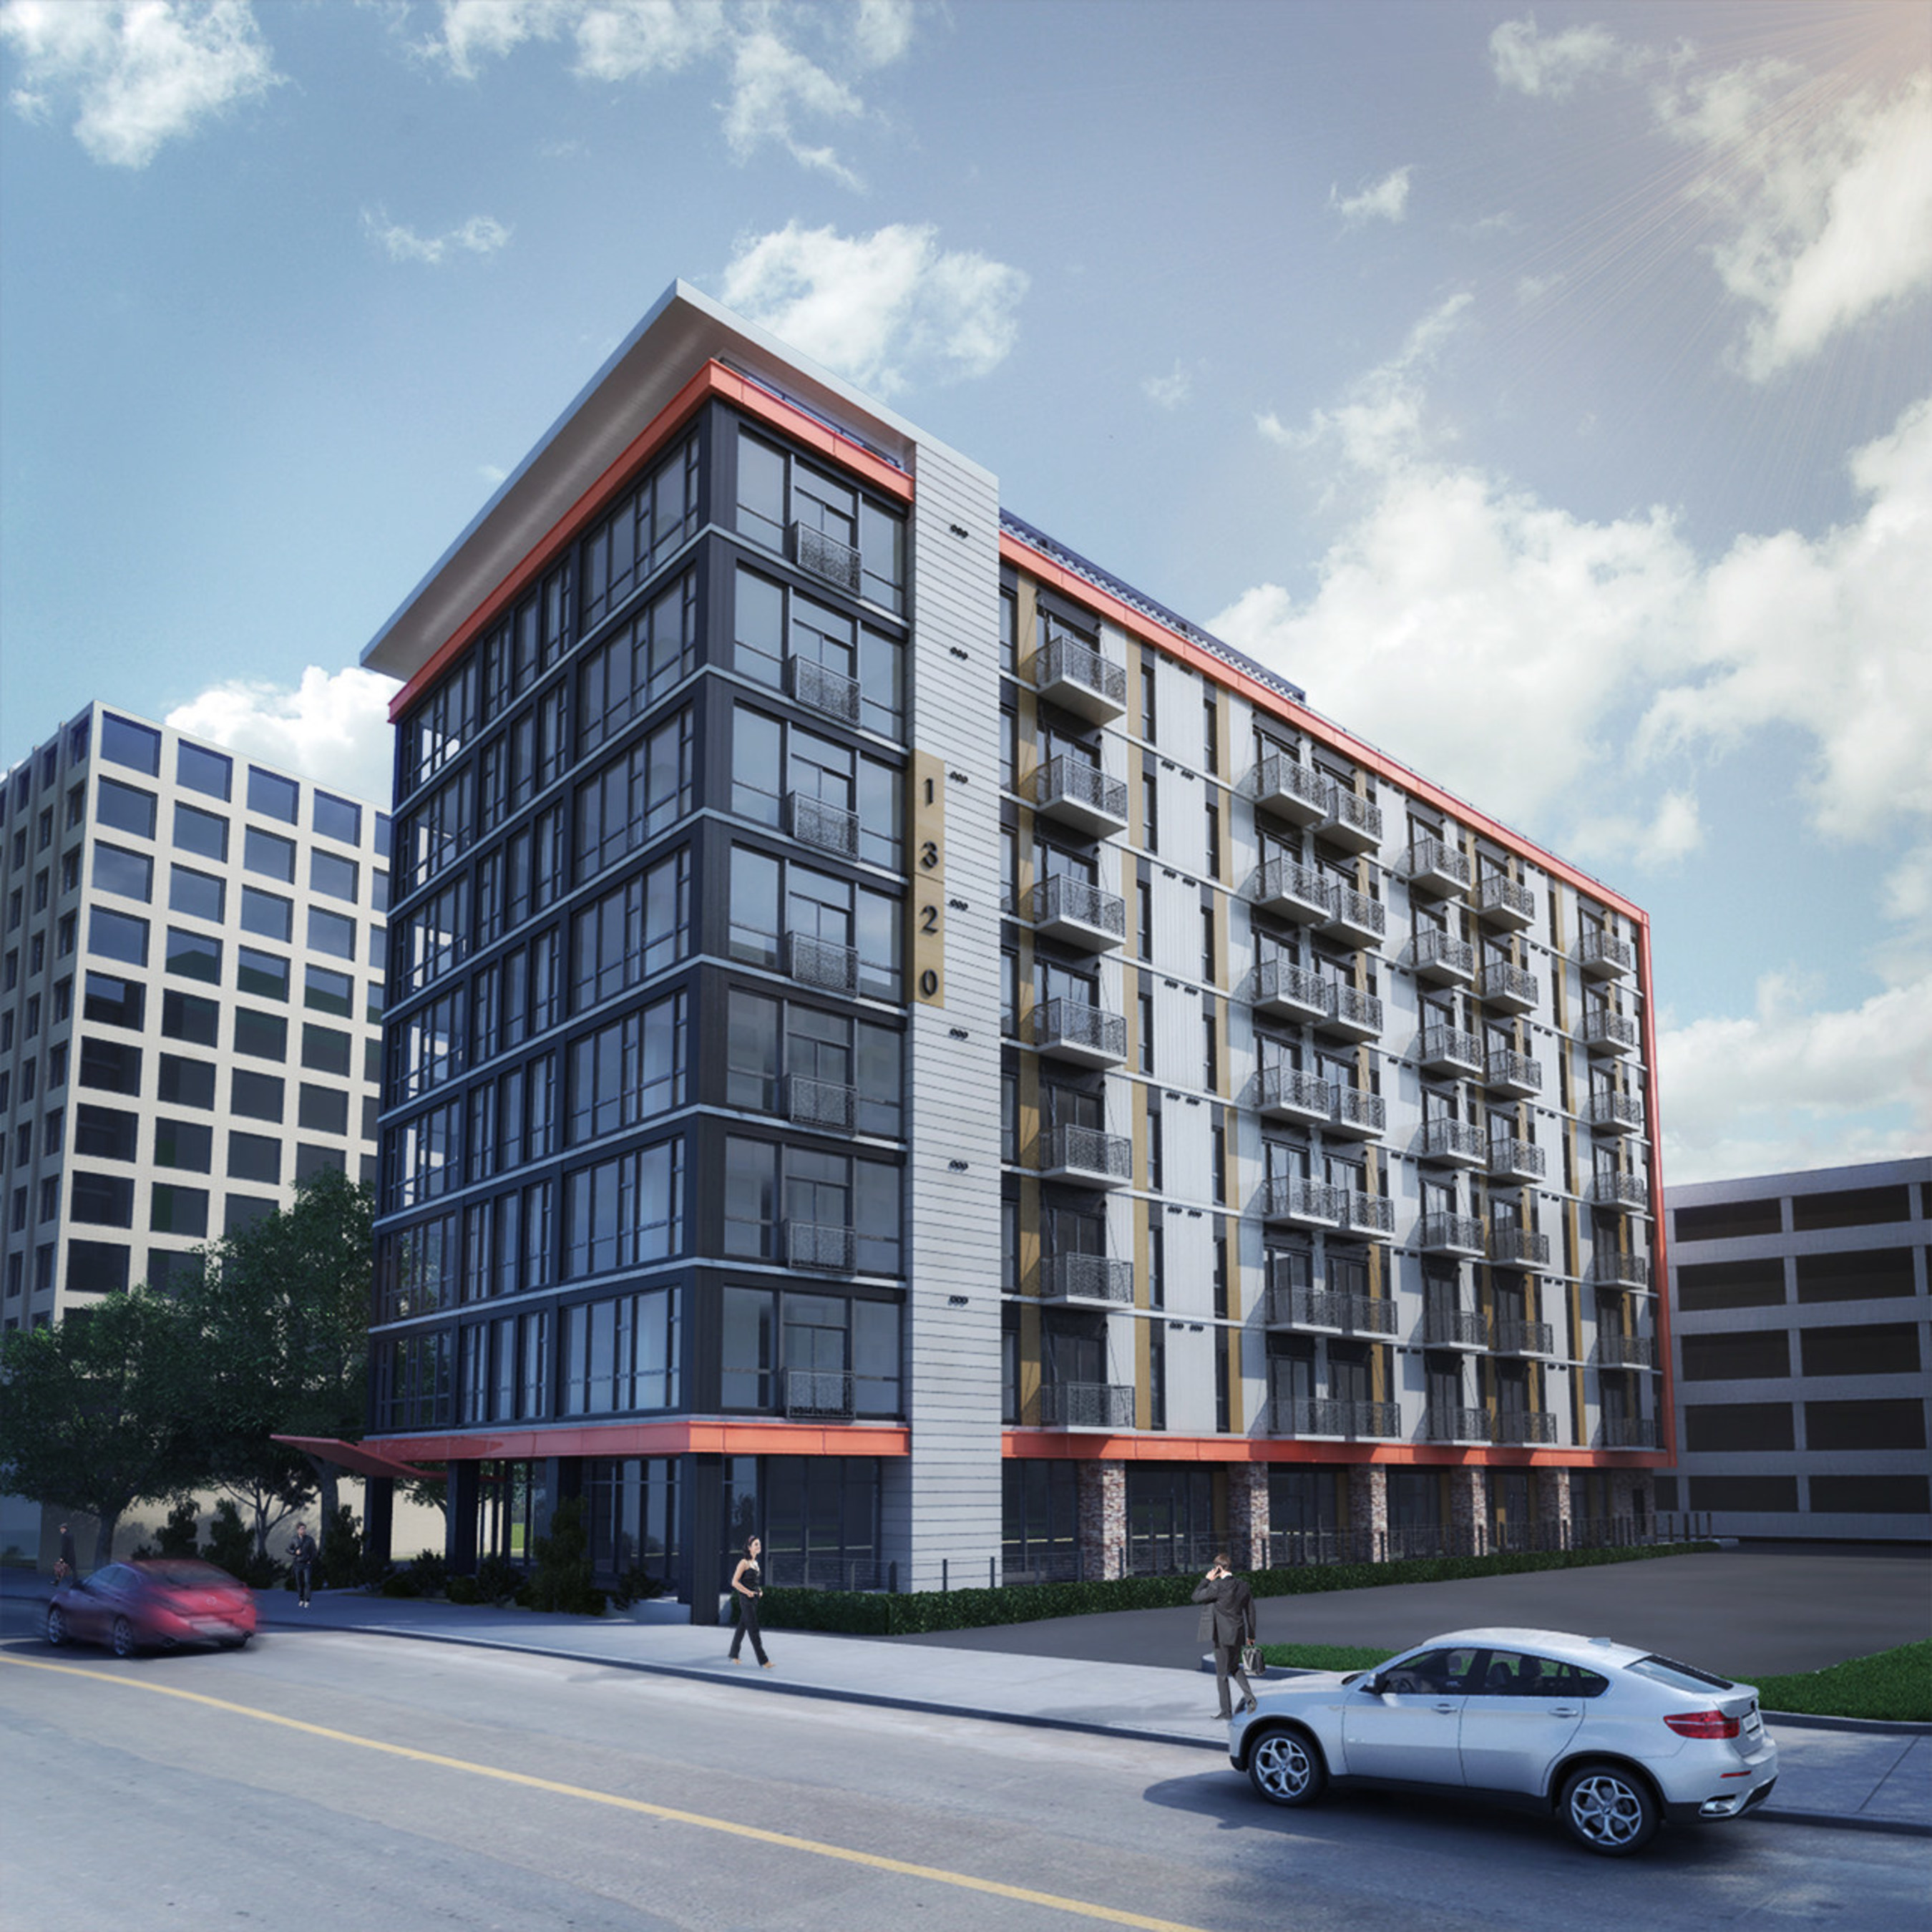 Octave 1320 Brings 102 Condos to Downtown Silver Spring, MD